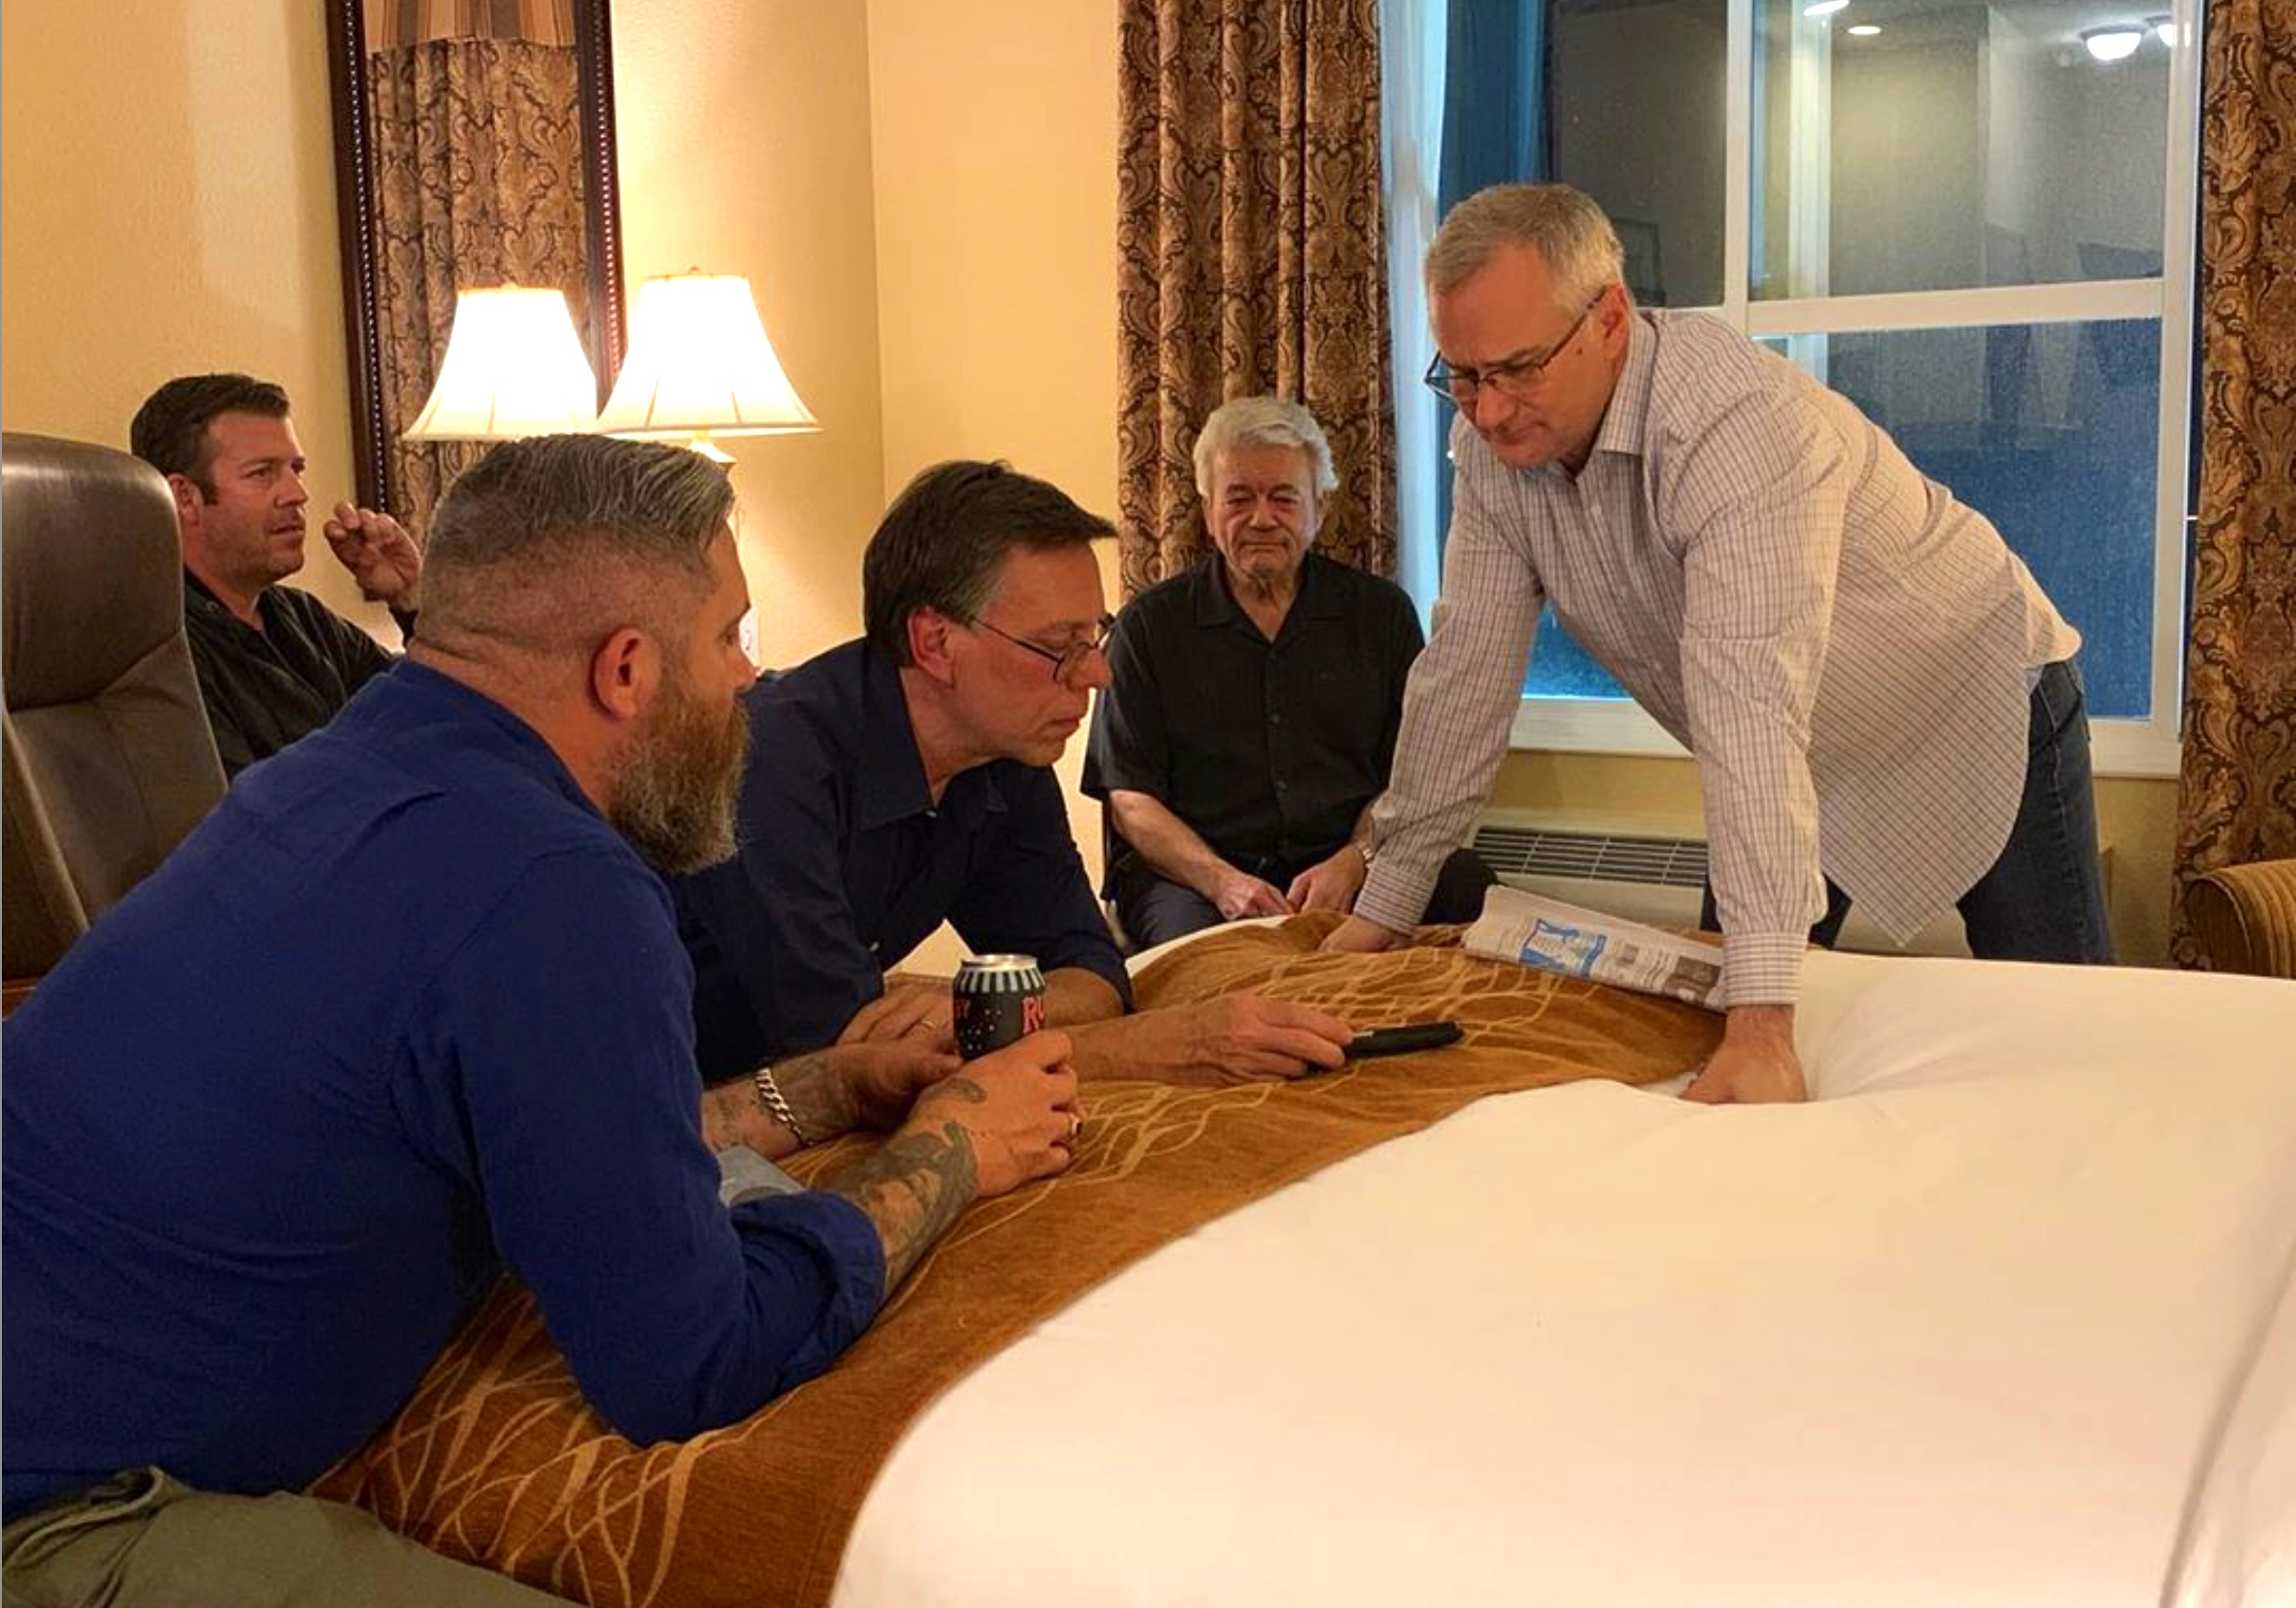 Reviewing UFO info with Bob Lazar and F-18 fighter pilot Commander Fravor at our hotel in McMinnville, Oregon.